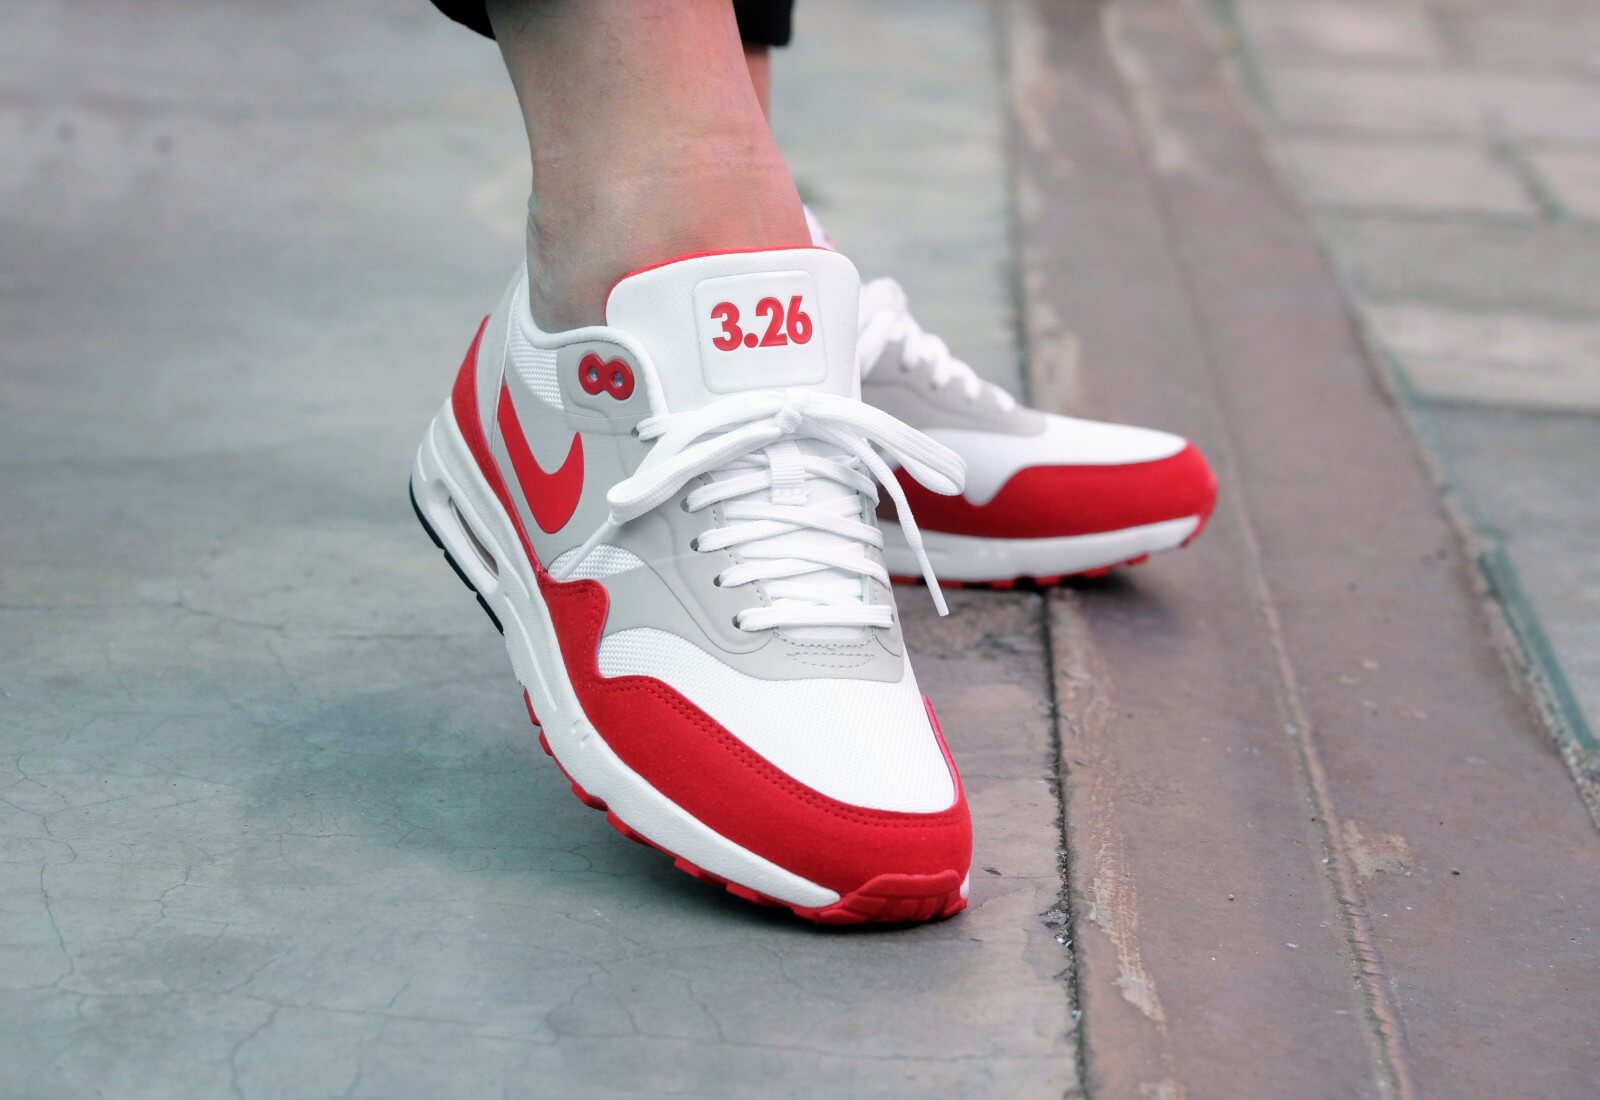 Nike WMNS Air Max 1 Ultra 2.0 LE Air Max Day WhiteUniversity Red 908489 101